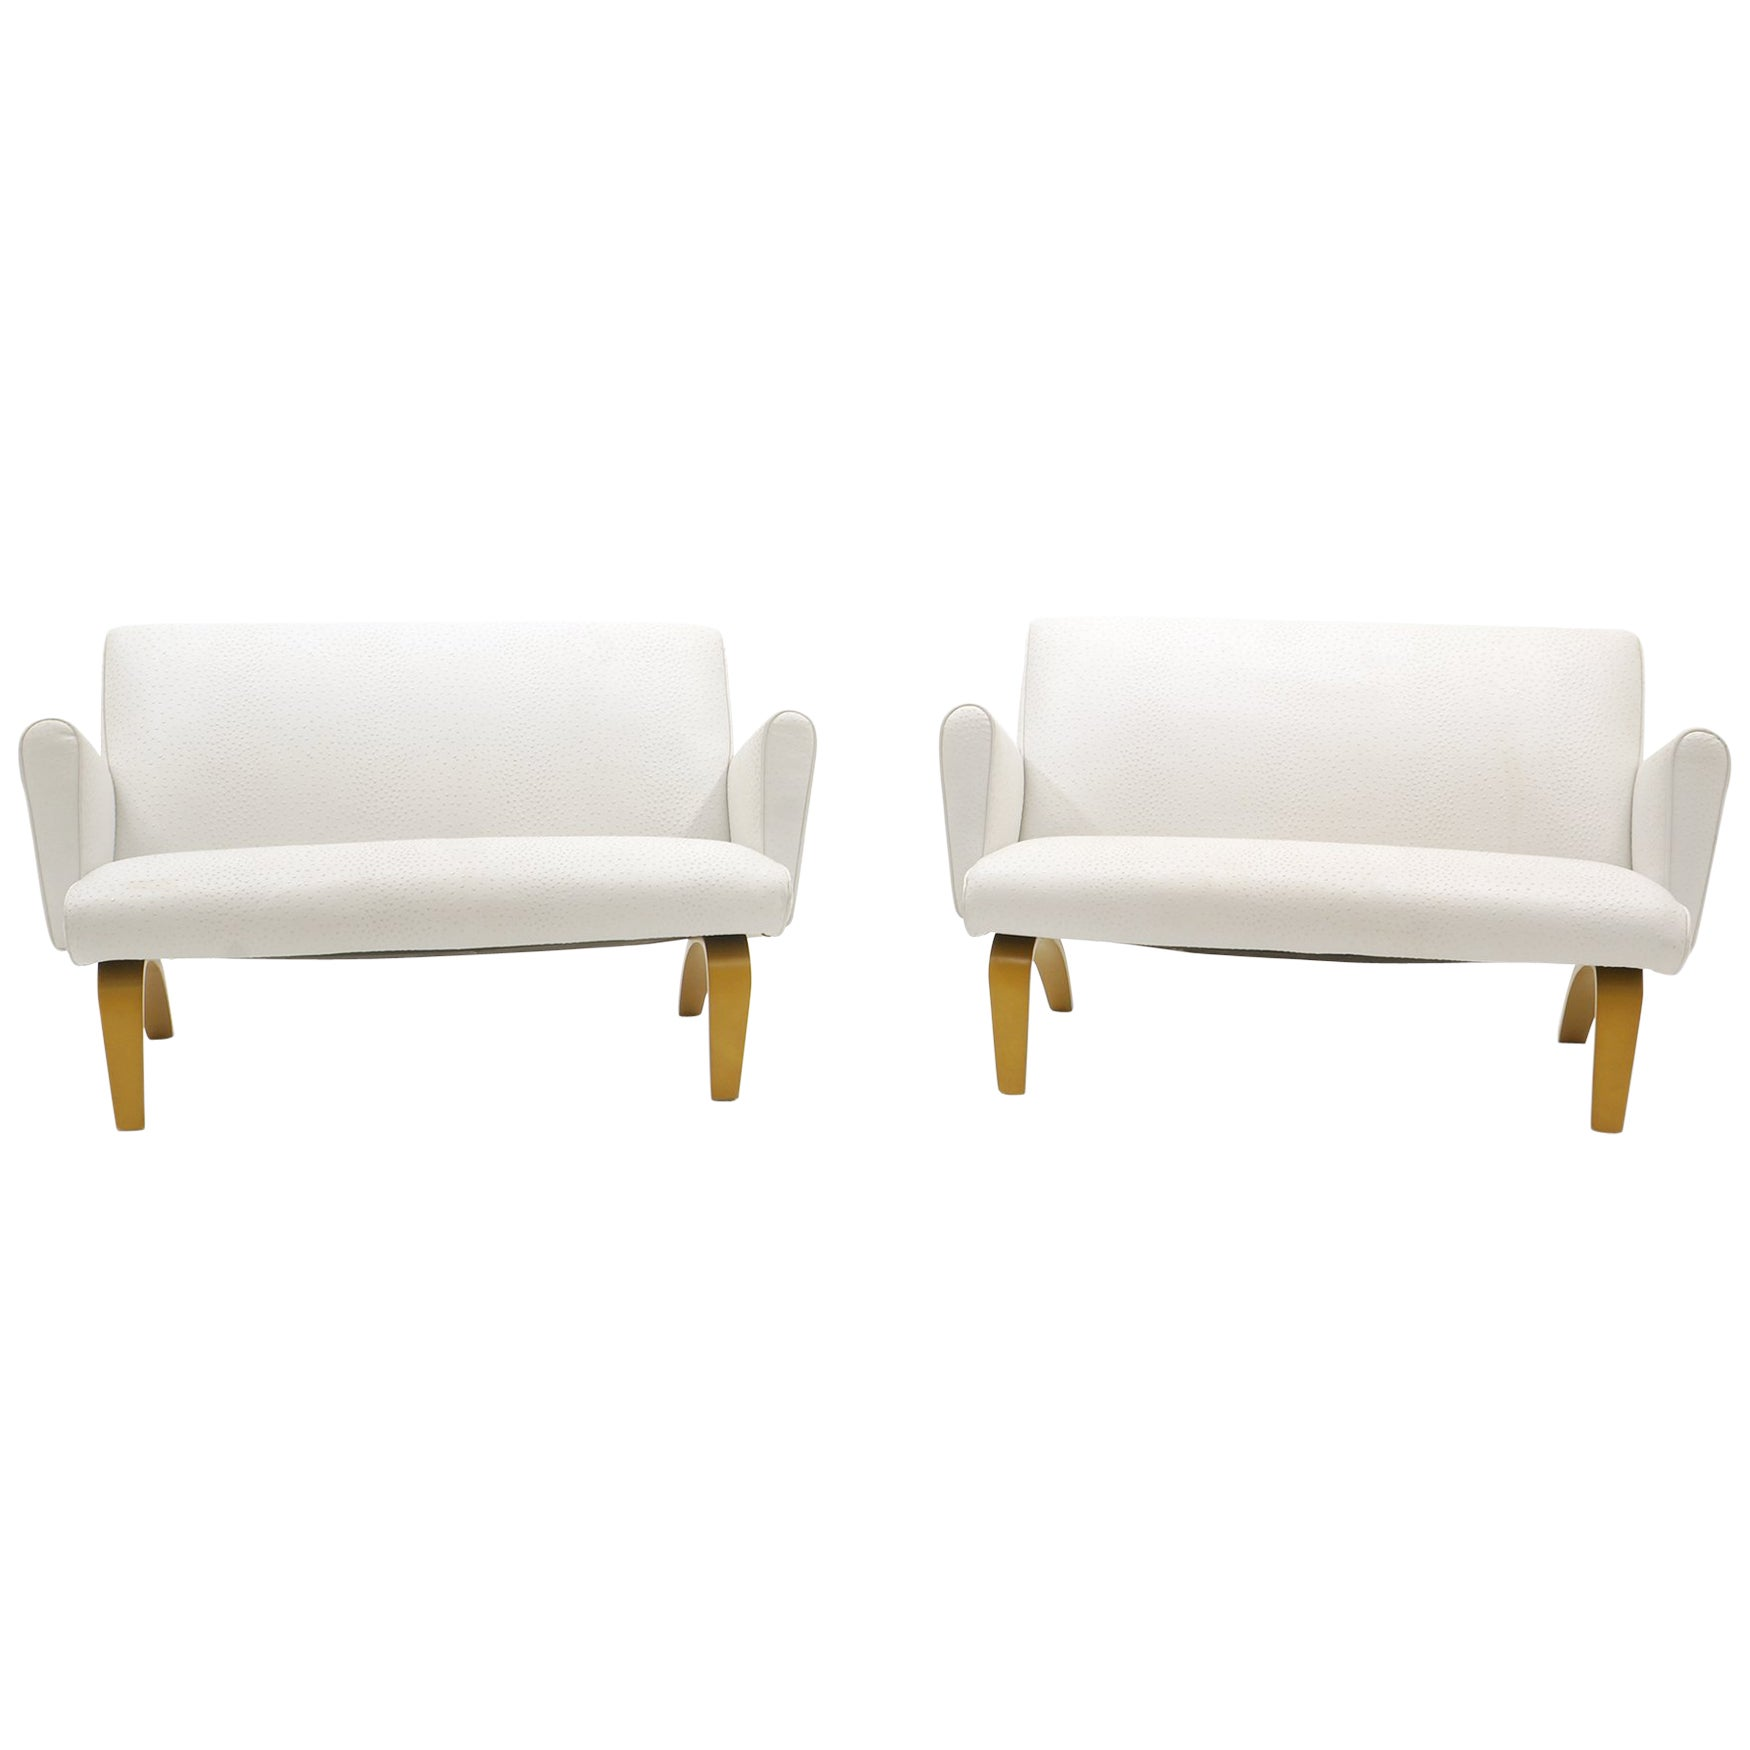 Pair of Loveseats / Settees with Arms by Thonet